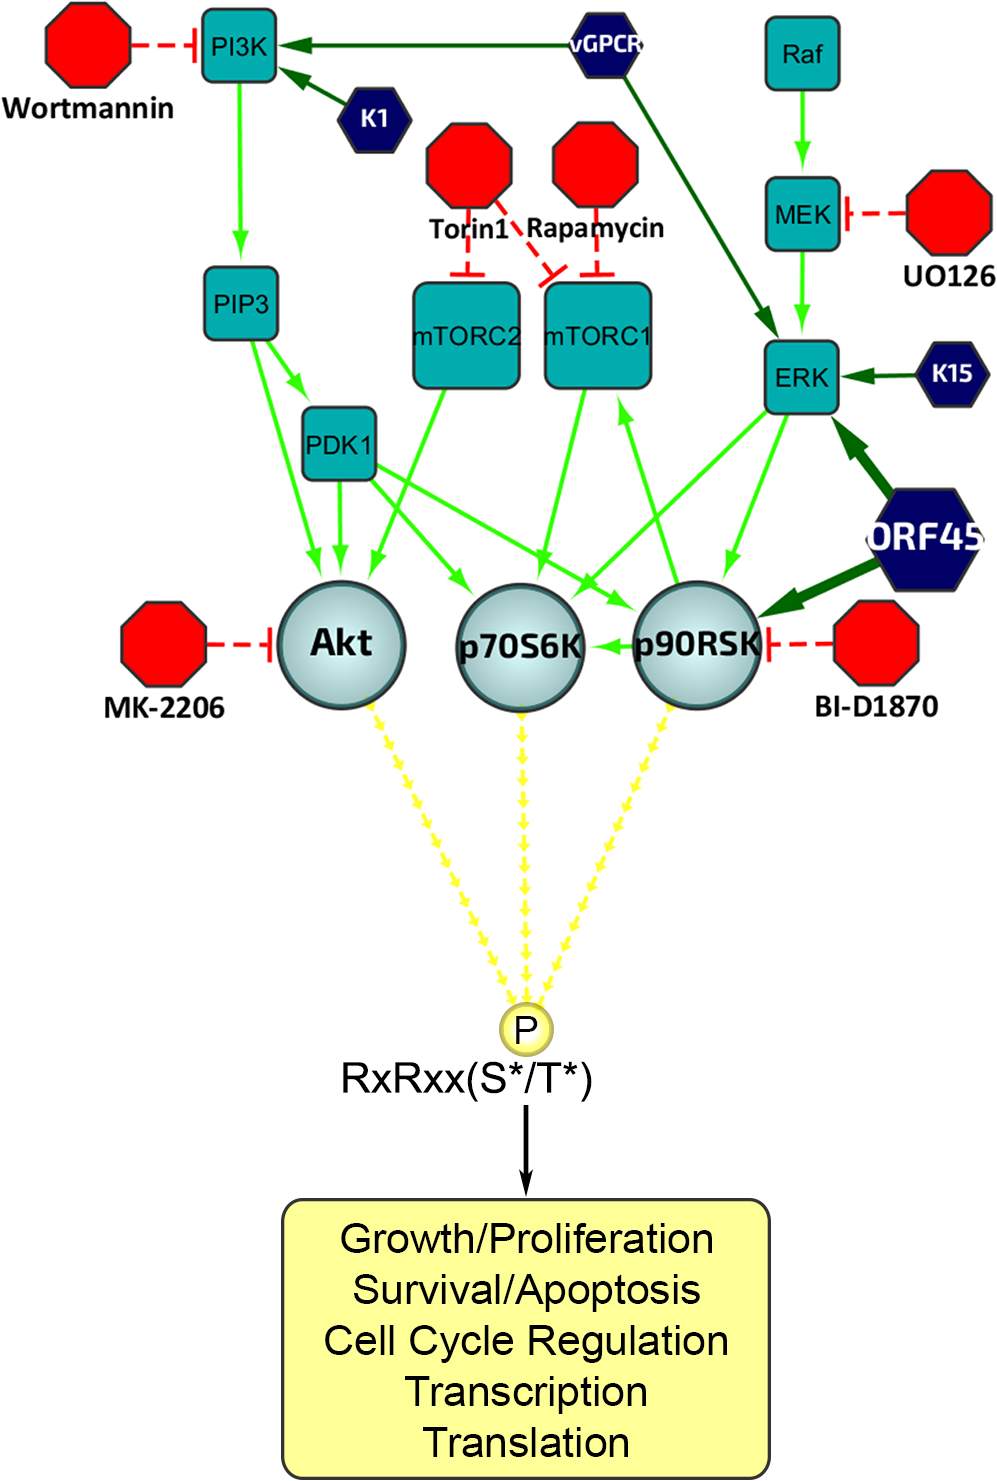 Diagram of the upstream signaling pathways that converge on activation of AGC kinases.